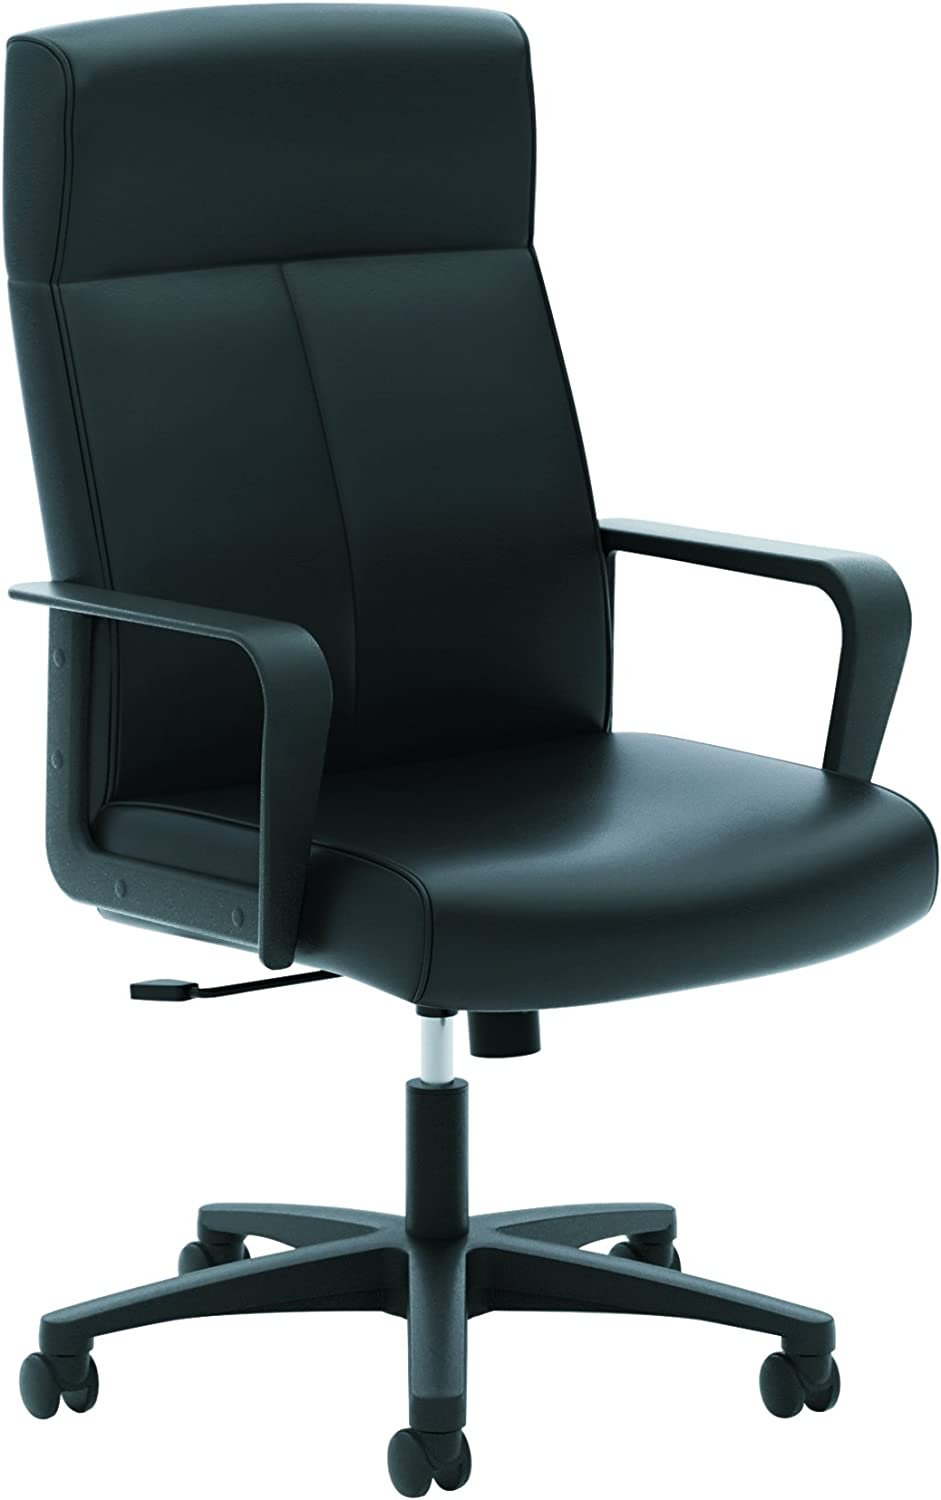 HON Validate Leather Executive Chair - High Back Armed Office Chair for Computer Desk, Black (HVL604)